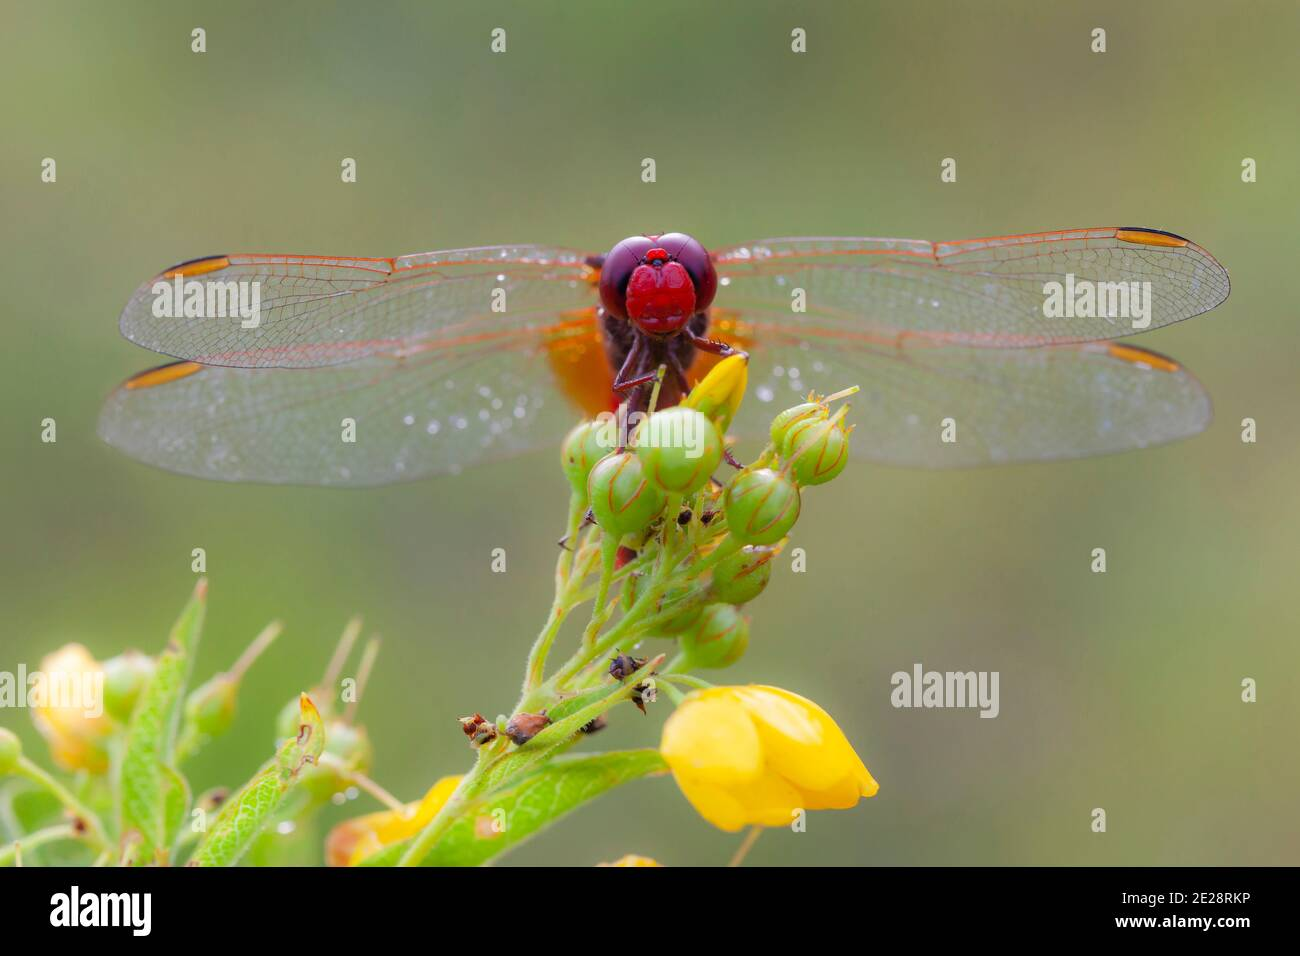 Broad Scarlet, Common Scarlet-darter, Scarlet Darter, Scarlet Dragonfly (Crocothemis erythraea, Croccothemis erythraea), male sits on an inflorescence Stock Photo